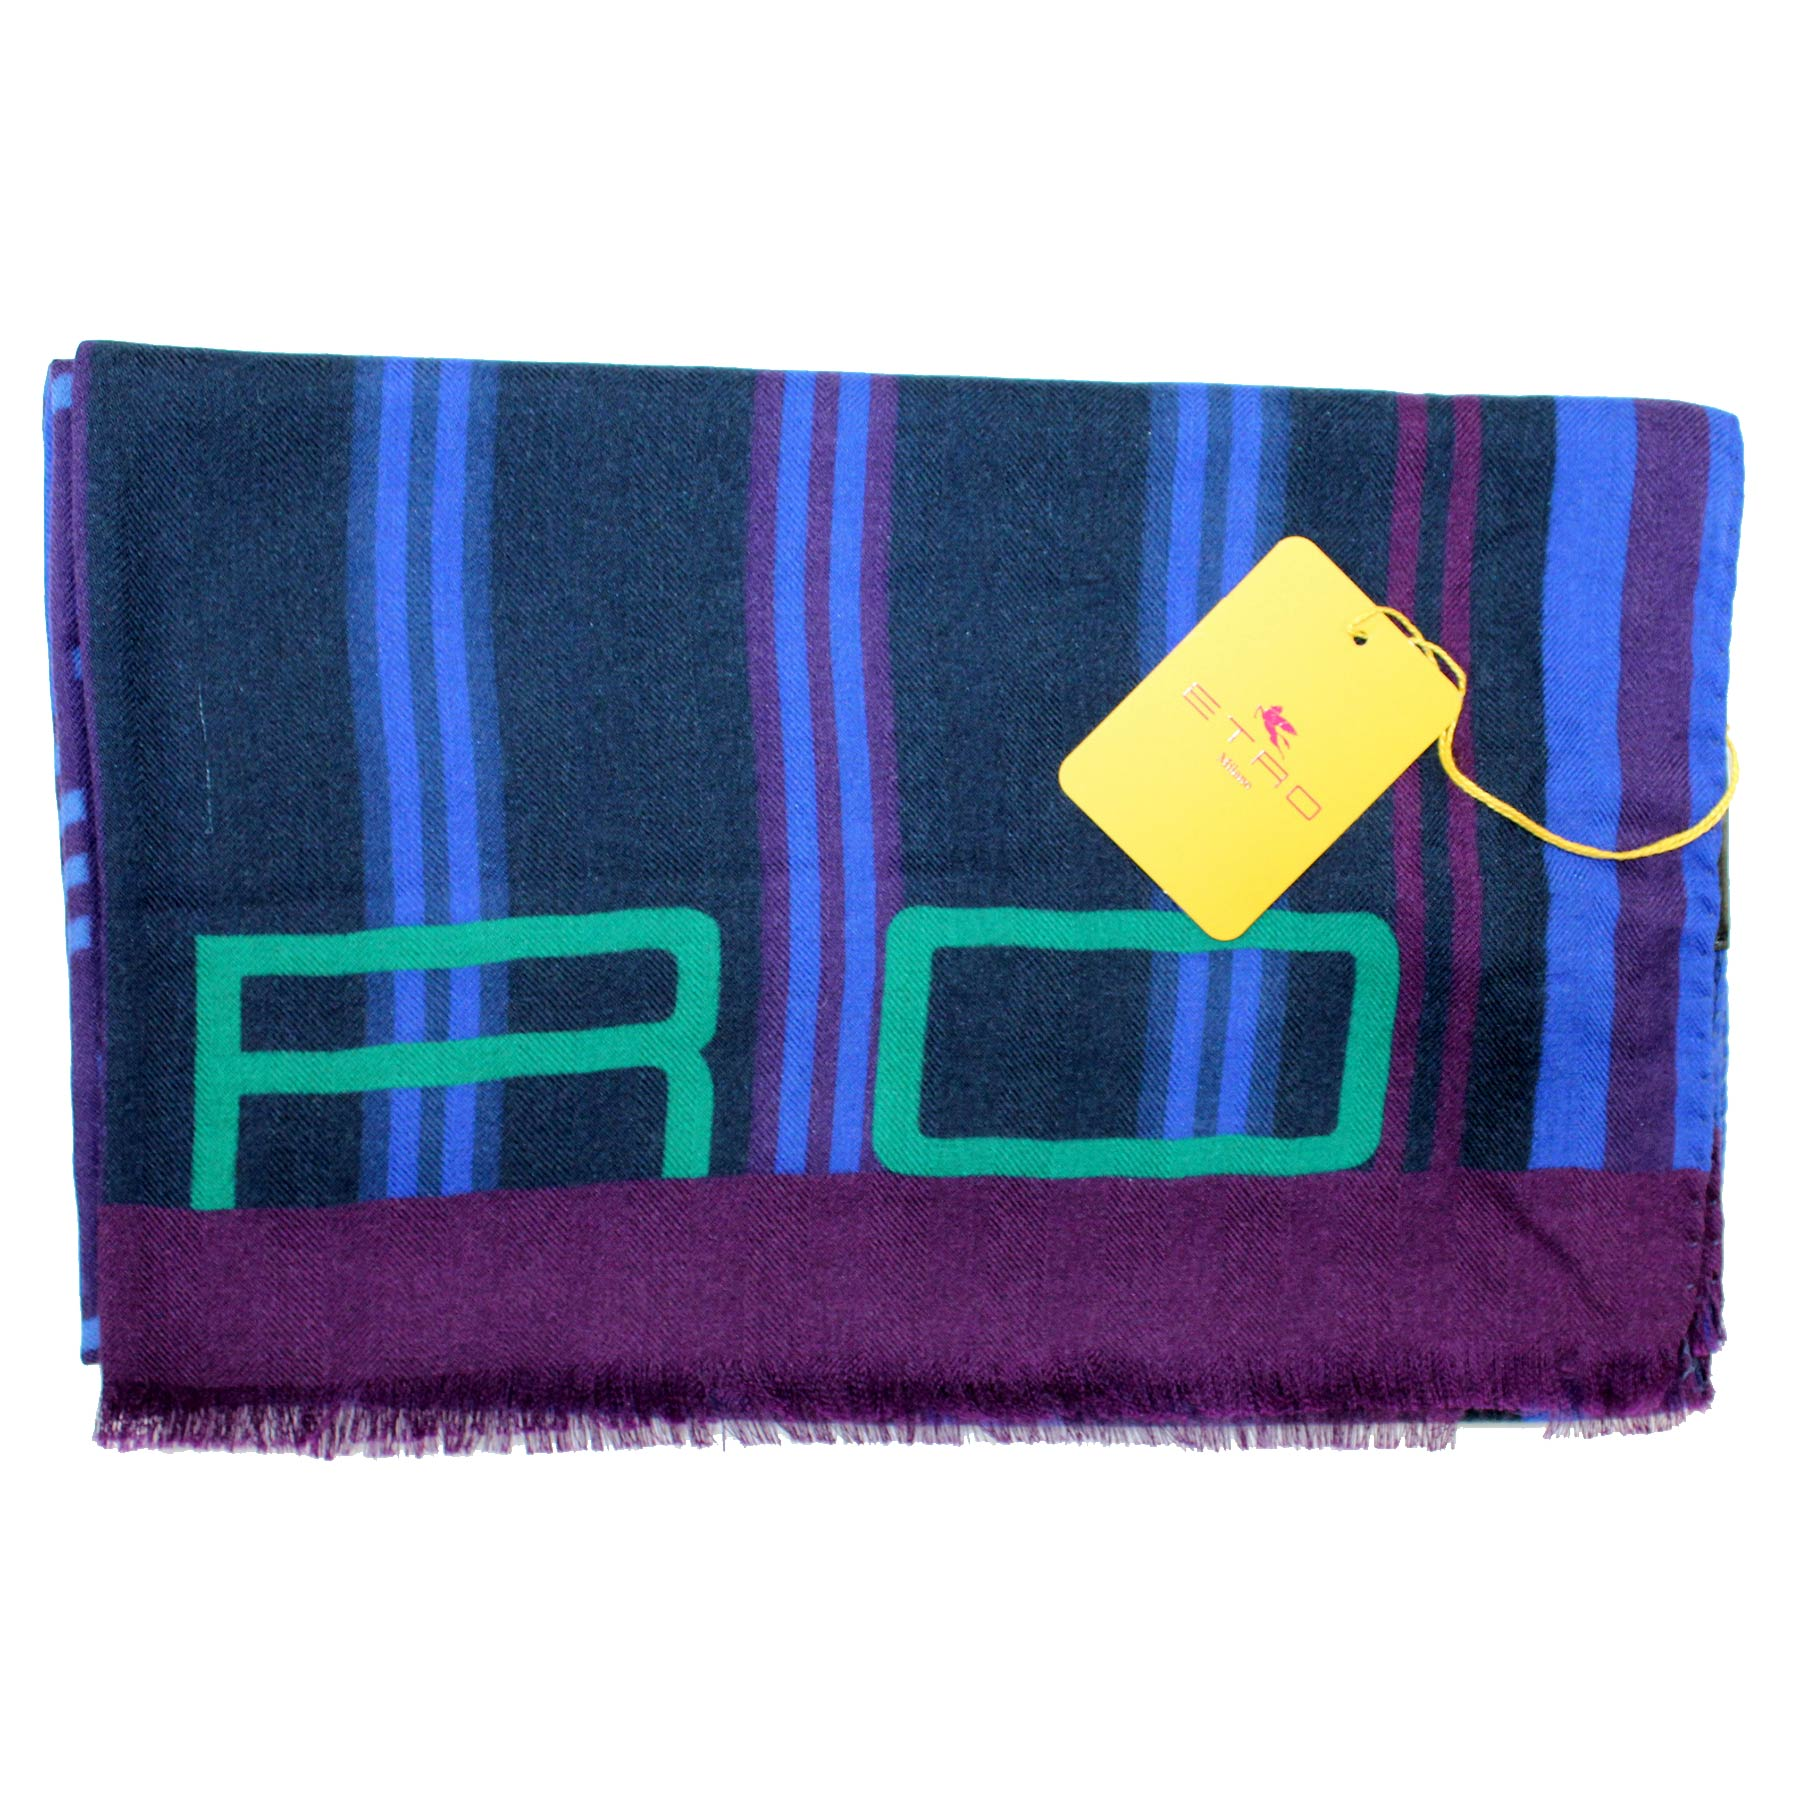 Etro Scarf Royal Blue Design - Women Collection Cashmere Silk Shawl